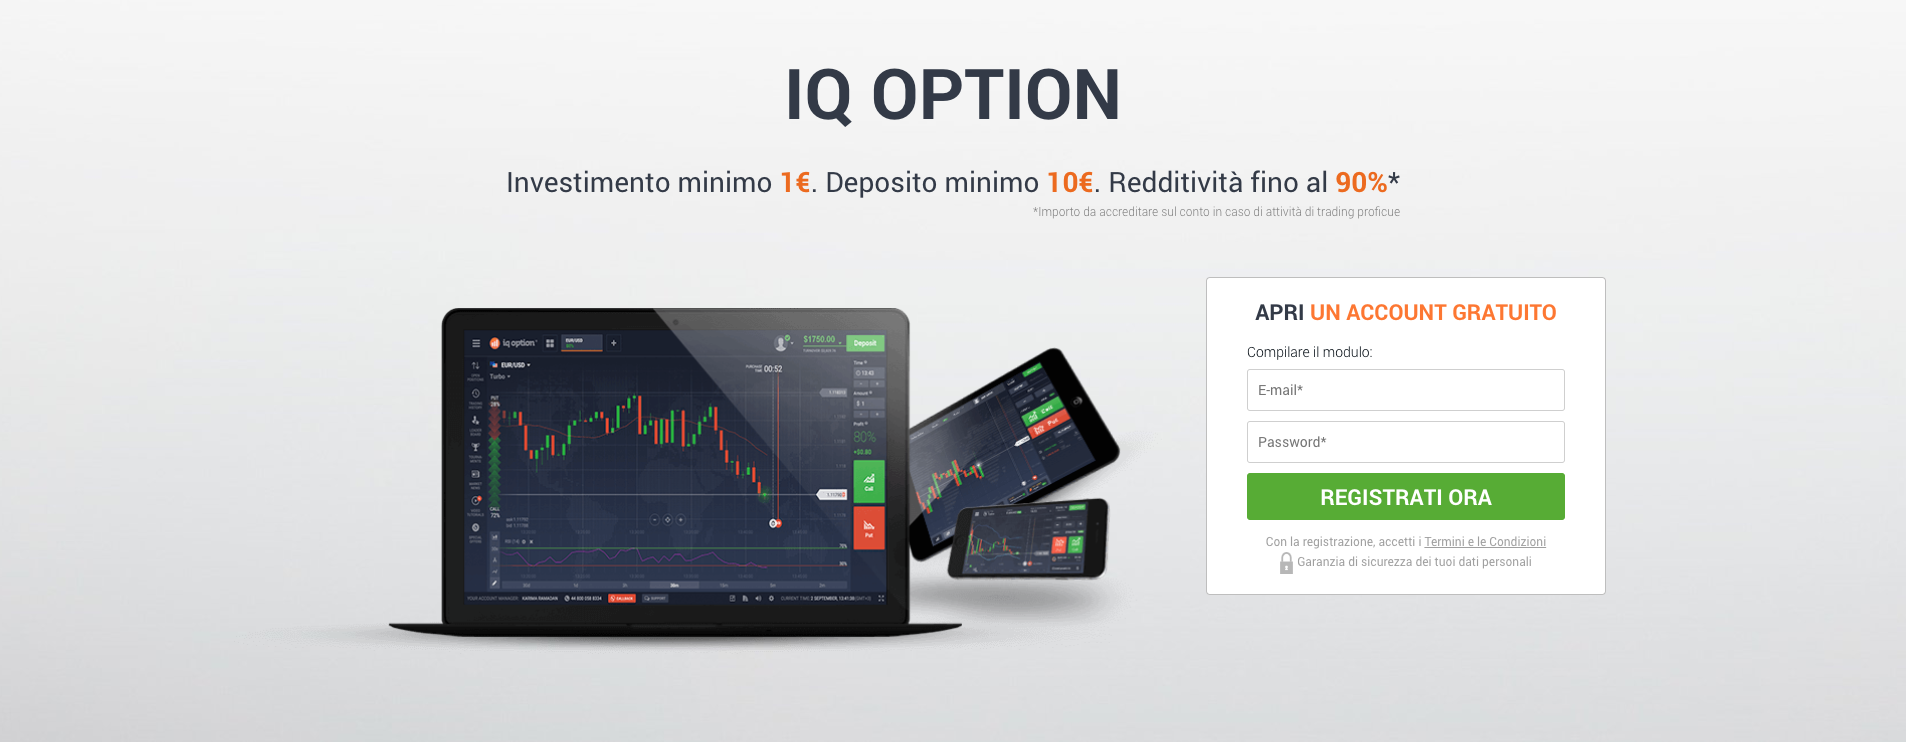 Guida Trading Bitcoin con iQ option: Registrati ora